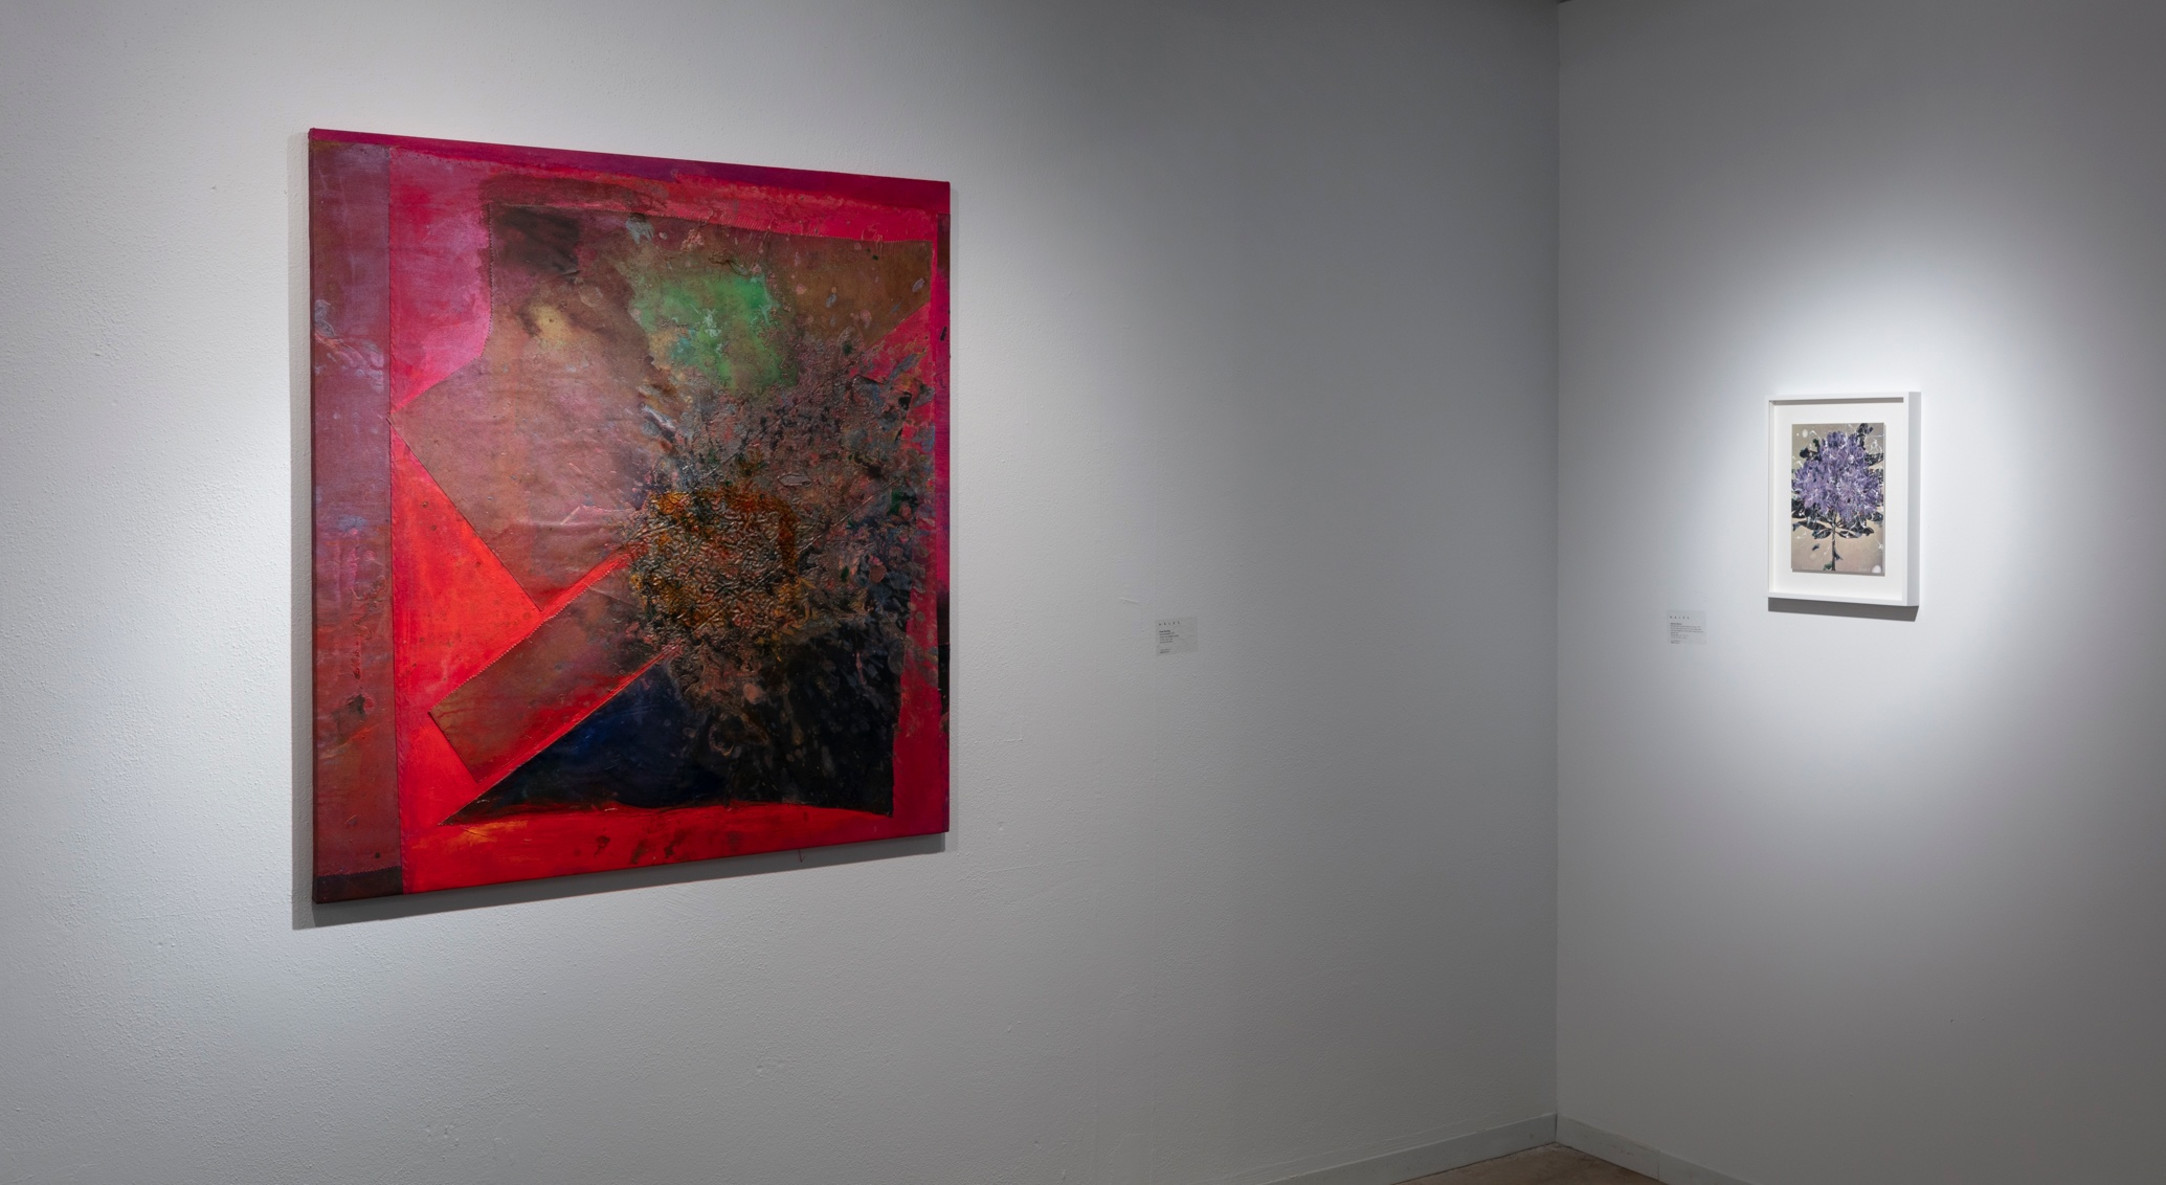 Installation view of Hales Gallery booth at Dallas Art Fair 2019